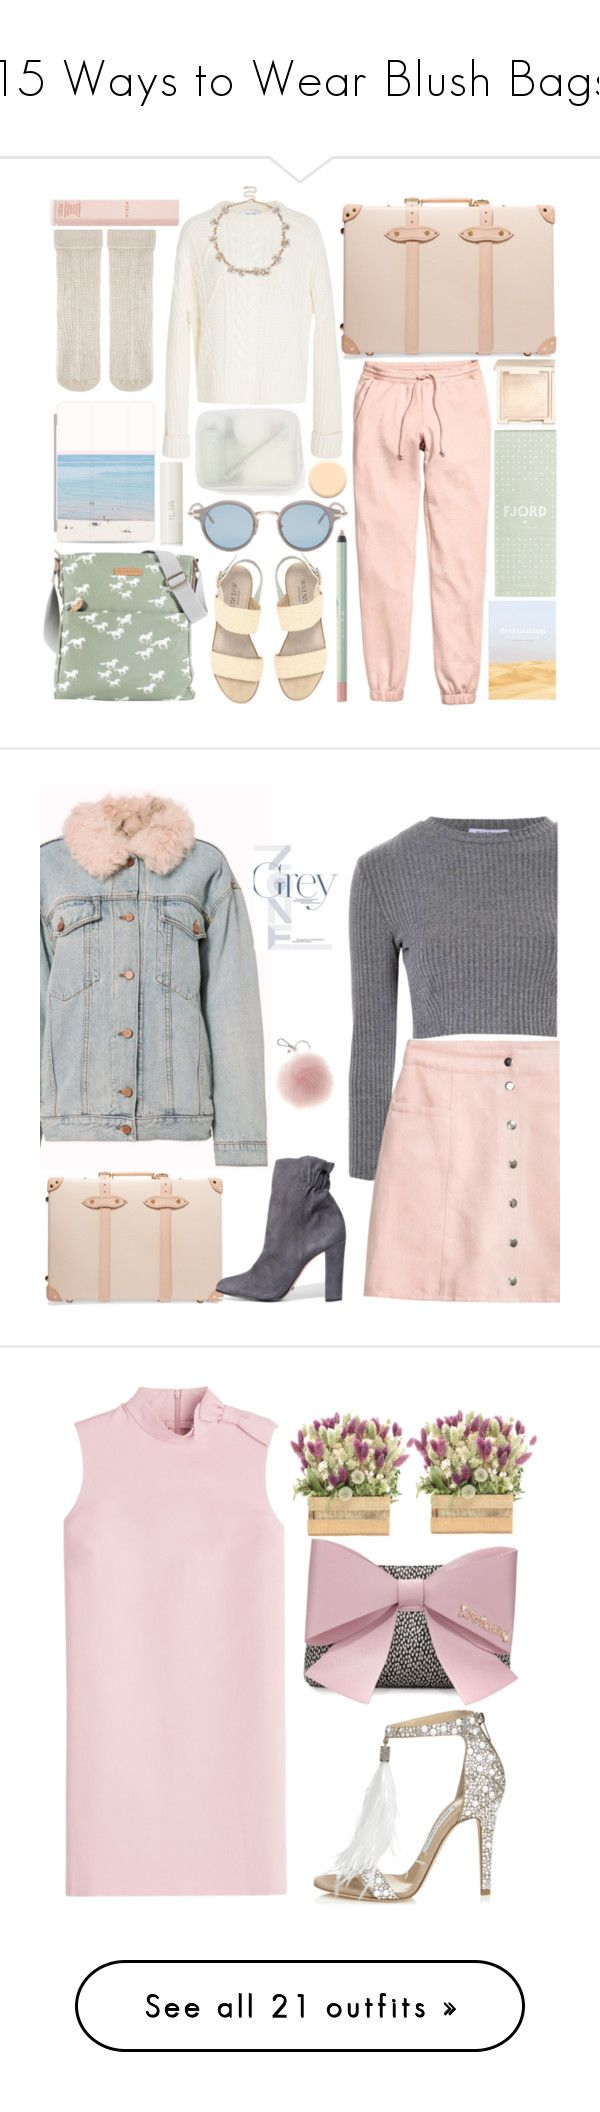 """15 Ways to Wear Blush Bags"" by polyvore-editorial ❤ liked on Polyvore featuring waystowear, blushbags, Brakeburn, Walnut Melbourne, Skandinavisk, Casetify, Carven, Muji, H&M and Thom Browne"